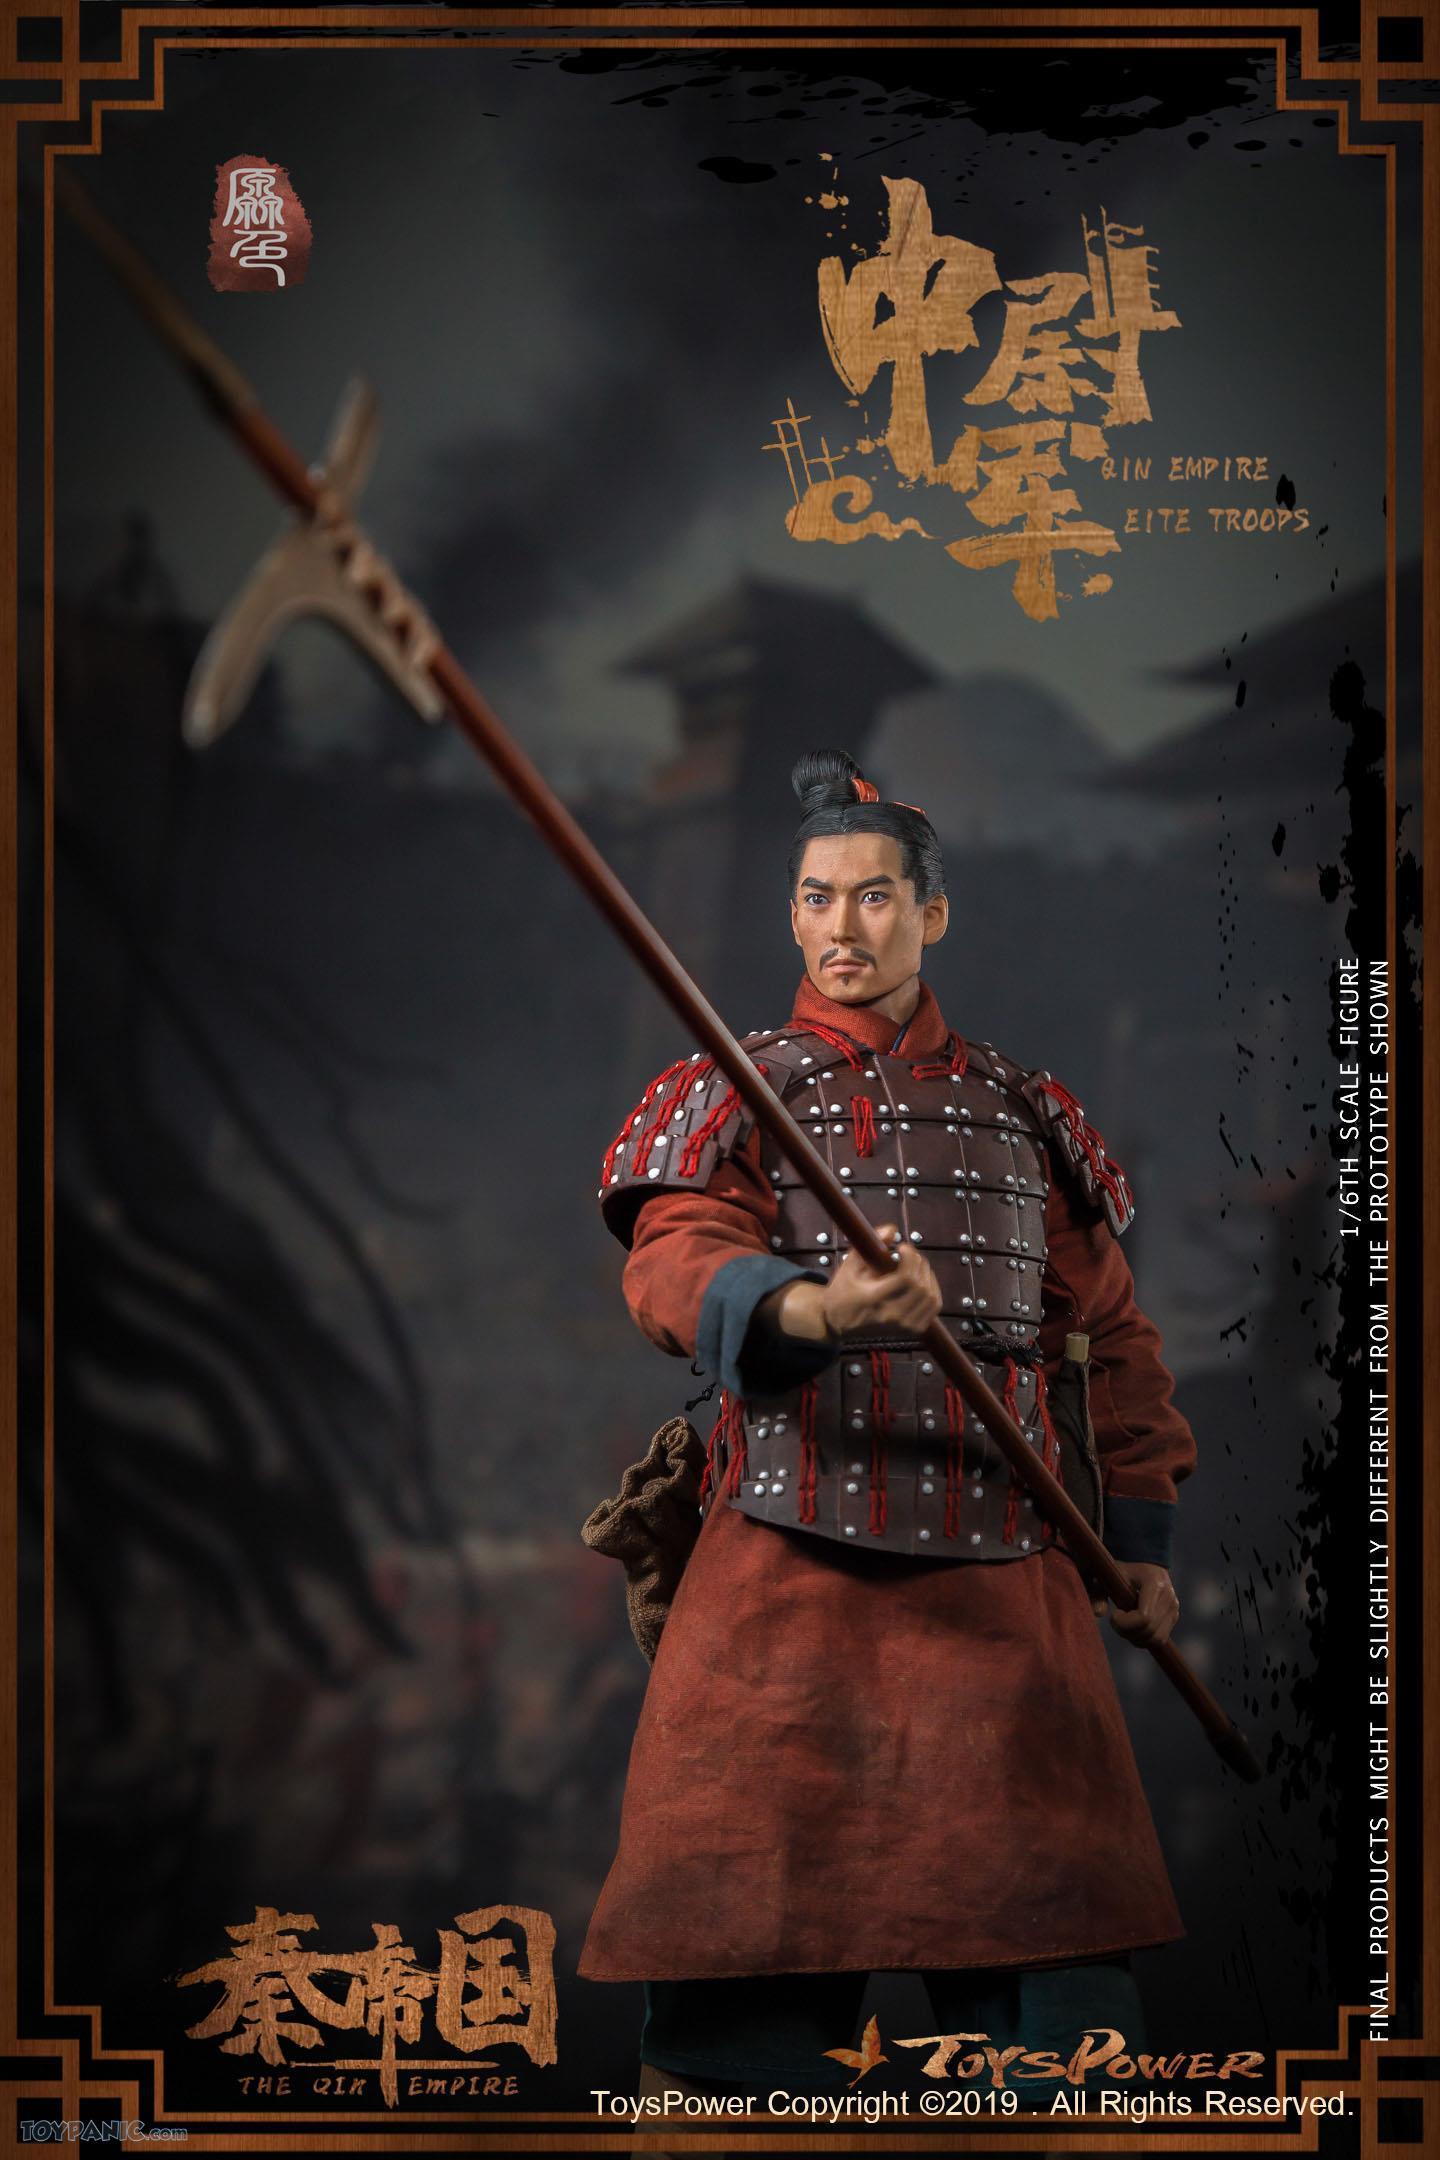 military - NEW PRODUCT: Sonder: 1/6 Song Dynasty Series-Yue Jiaxing Yang Zaixing Action Figure (SD005#) 630201913410AM_3